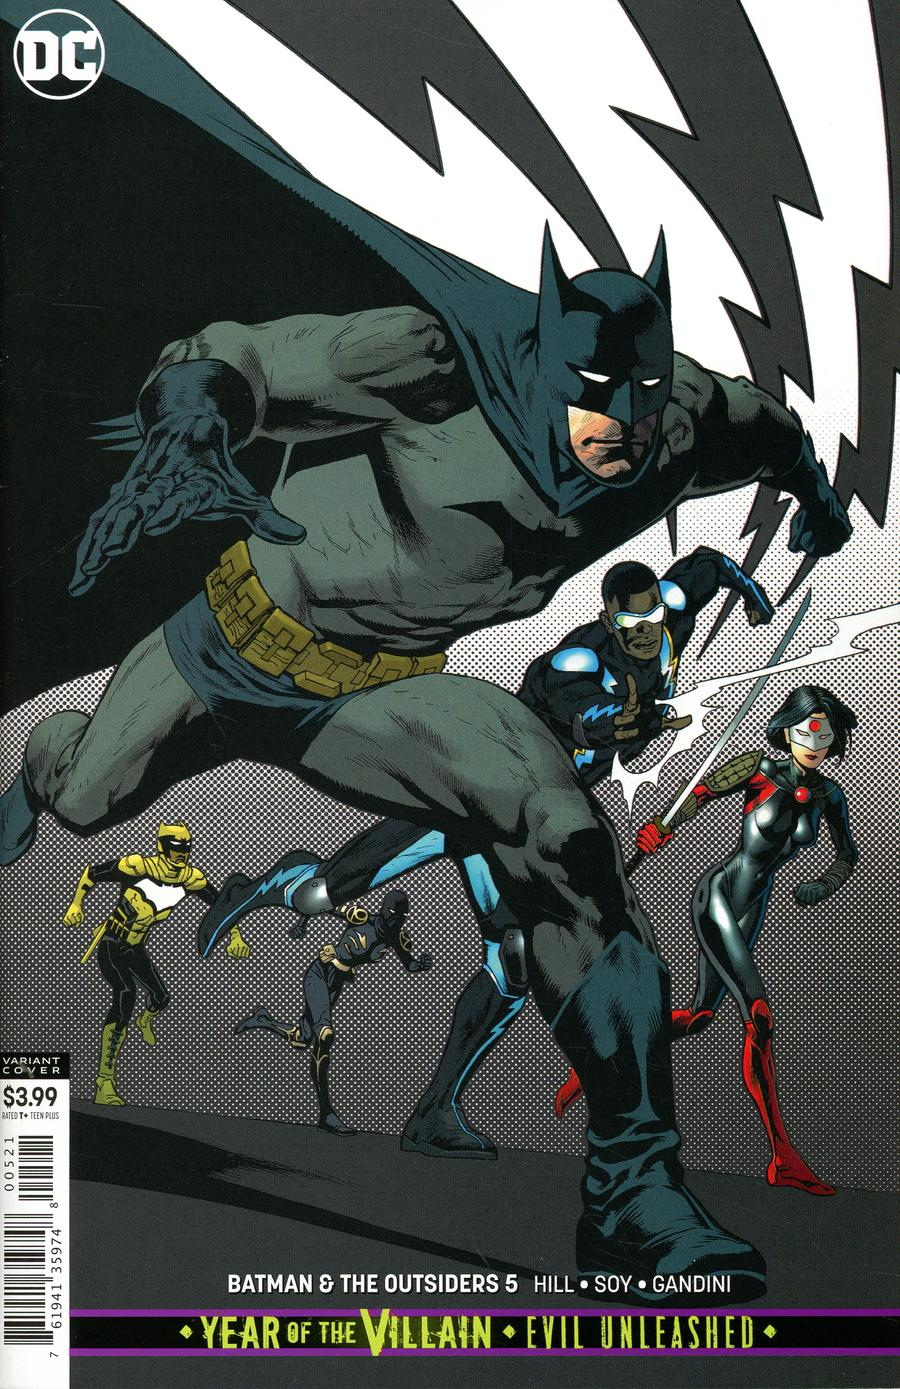 Batman And The Outsiders Vol 3 #5 Cover B Variant Kevin Nowlan Cover (Year Of The Villain Evil Unleashed Tie-In)